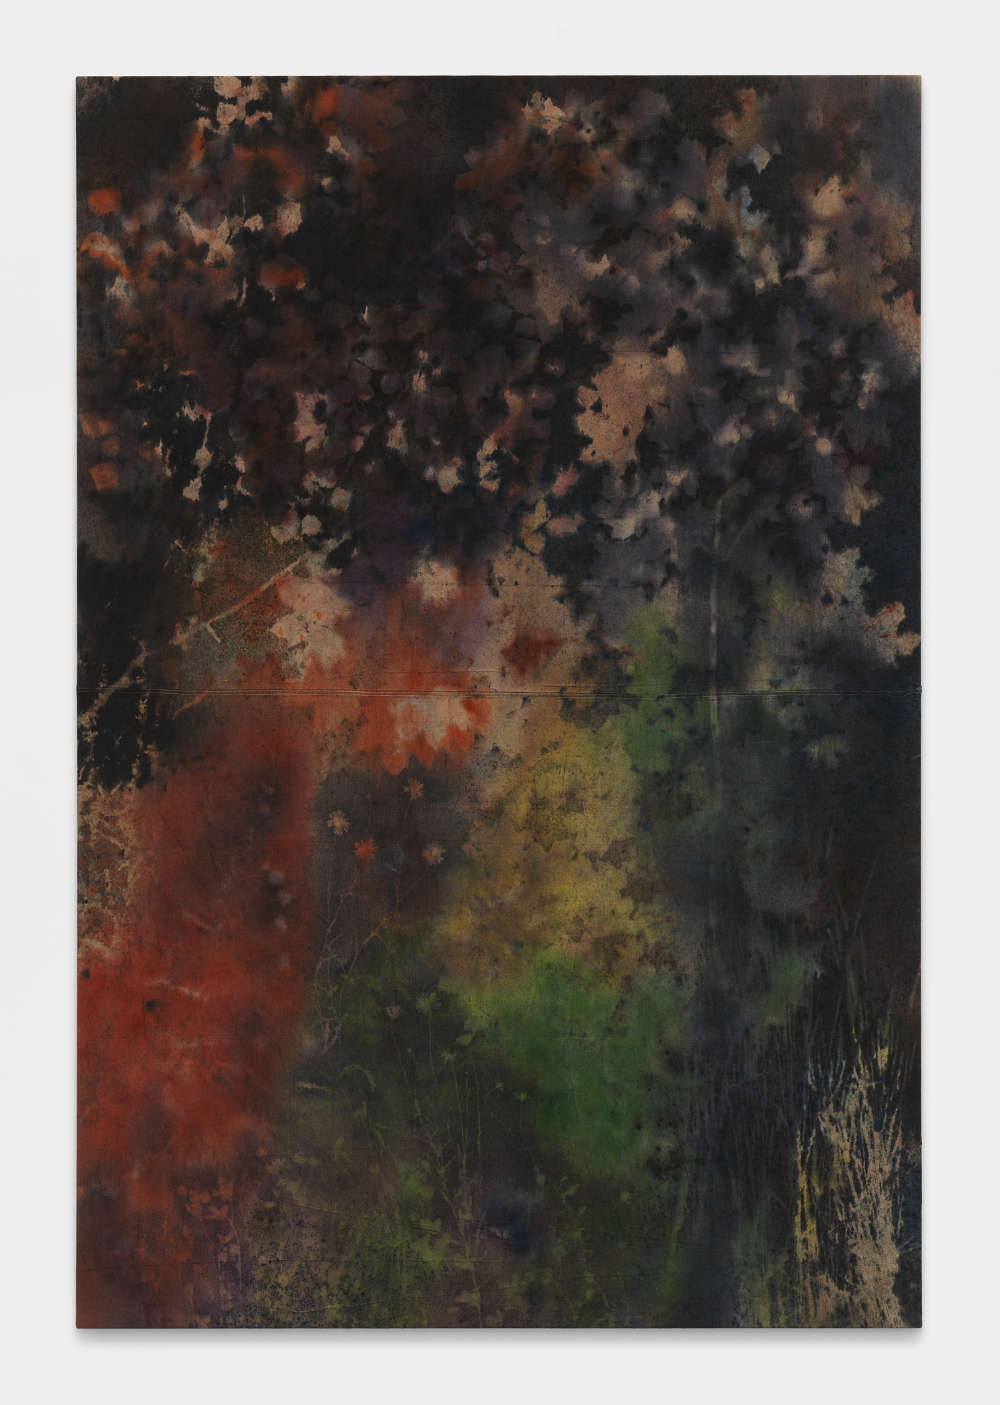 SAM FALLS, Untitled (Bovina, N.Y., field to forest 2), 2017. Pigment on canvas 233.5 x 157.5 cm / 92 x 62 inches